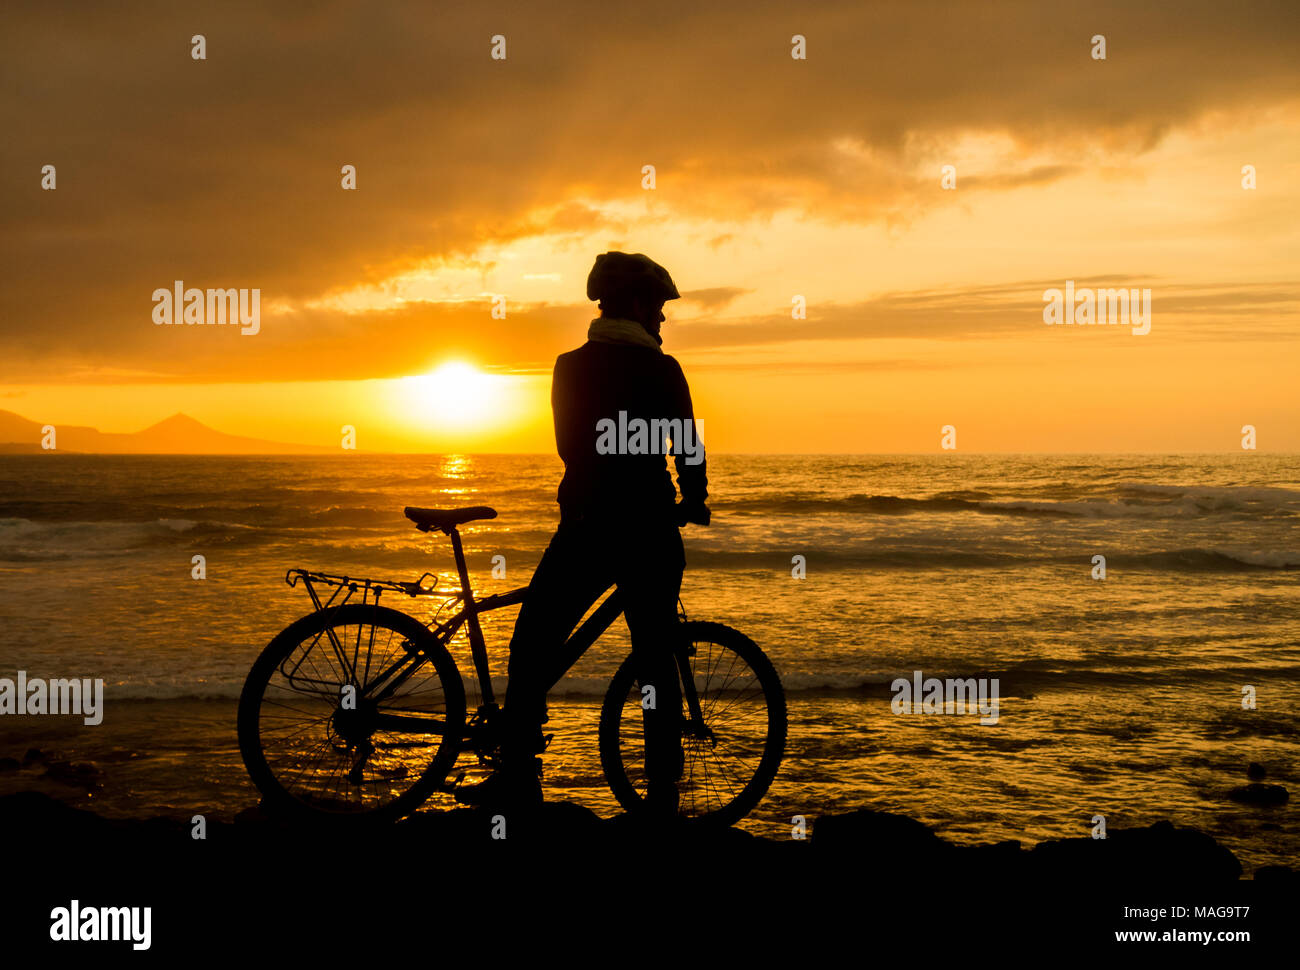 female mountain biker at sunset on the north coast of Gran Canaria, Canary Islands, Spain - Stock Image